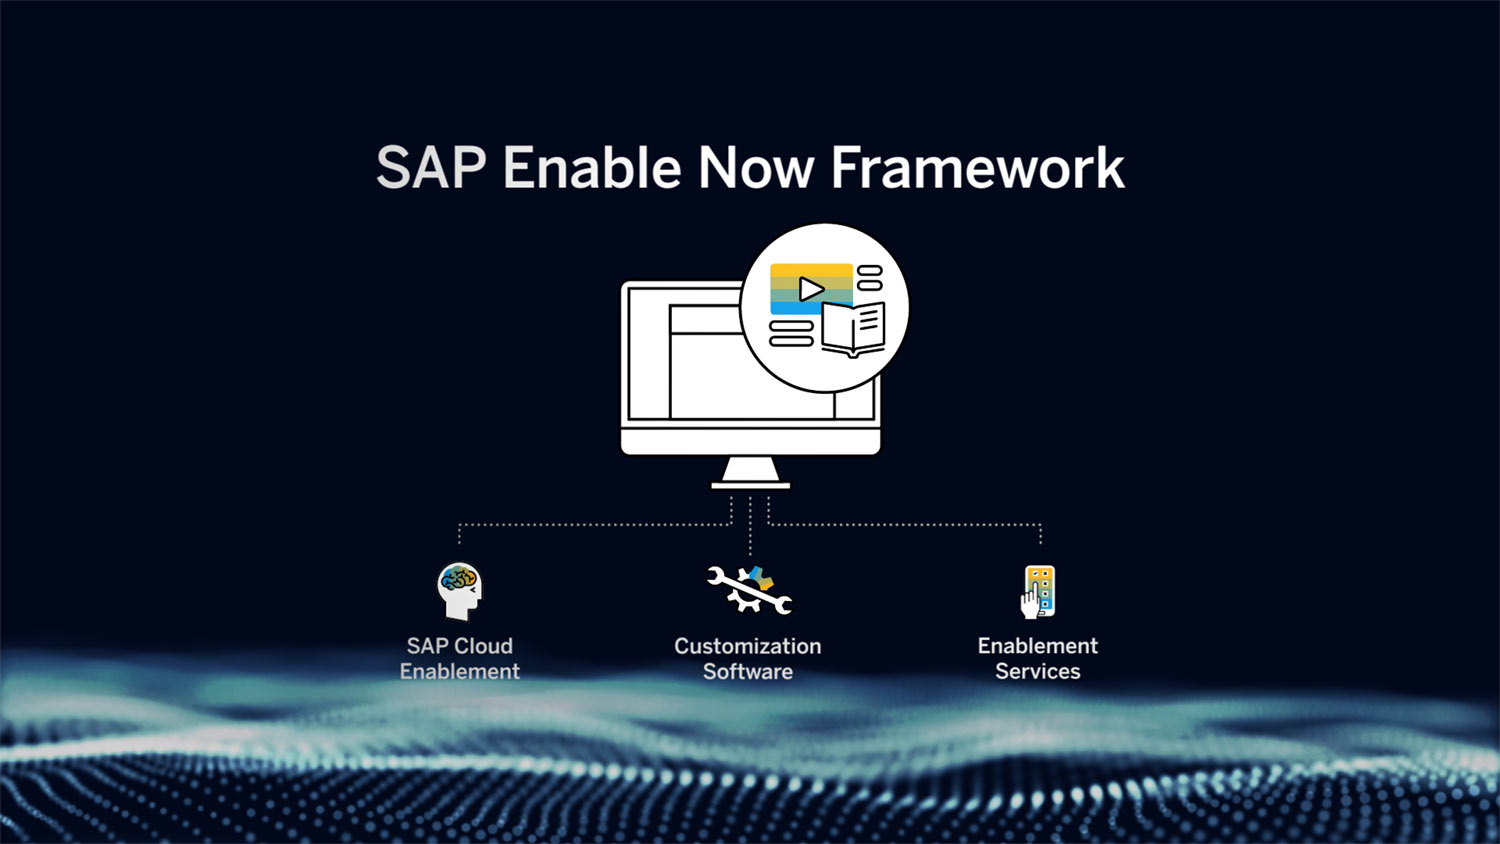 SAP Enable Now Framework